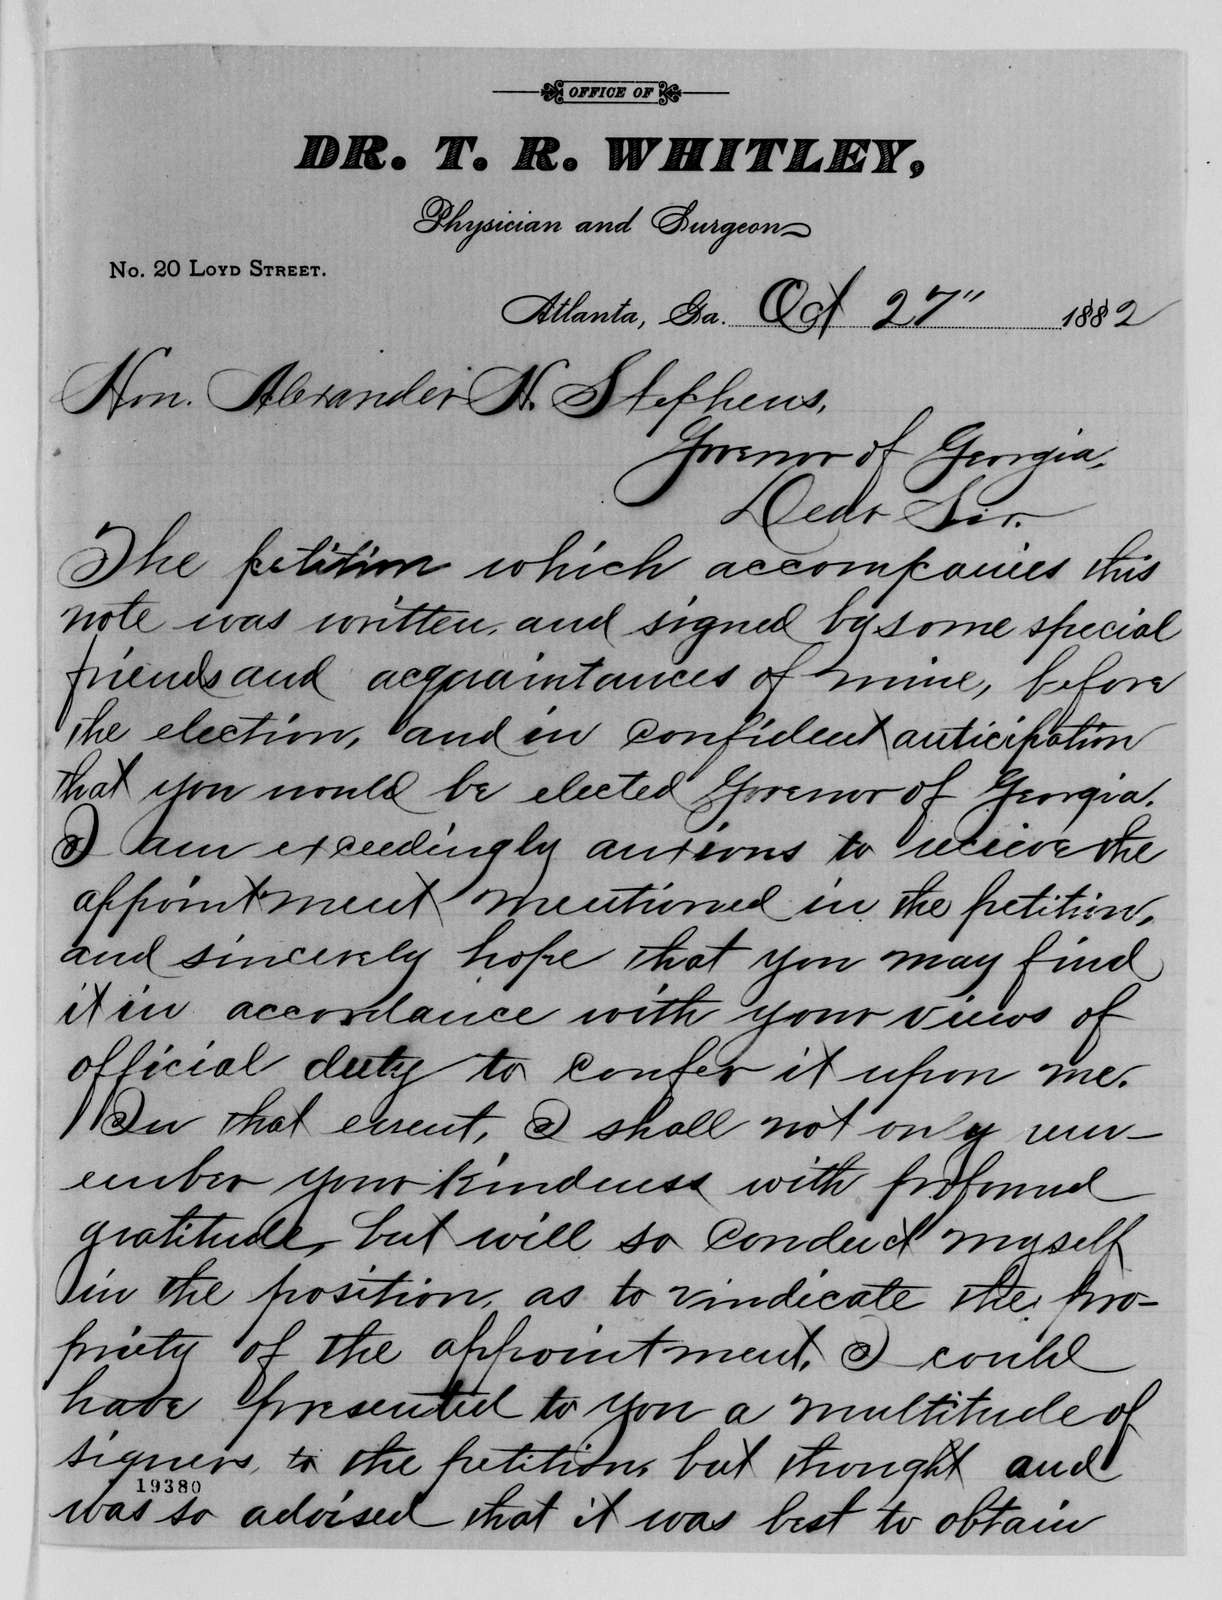 Alexander Hamilton Stephens Papers: General Correspondence, 1784-1886; 1882, Oct. 9-1883, Jan. 5